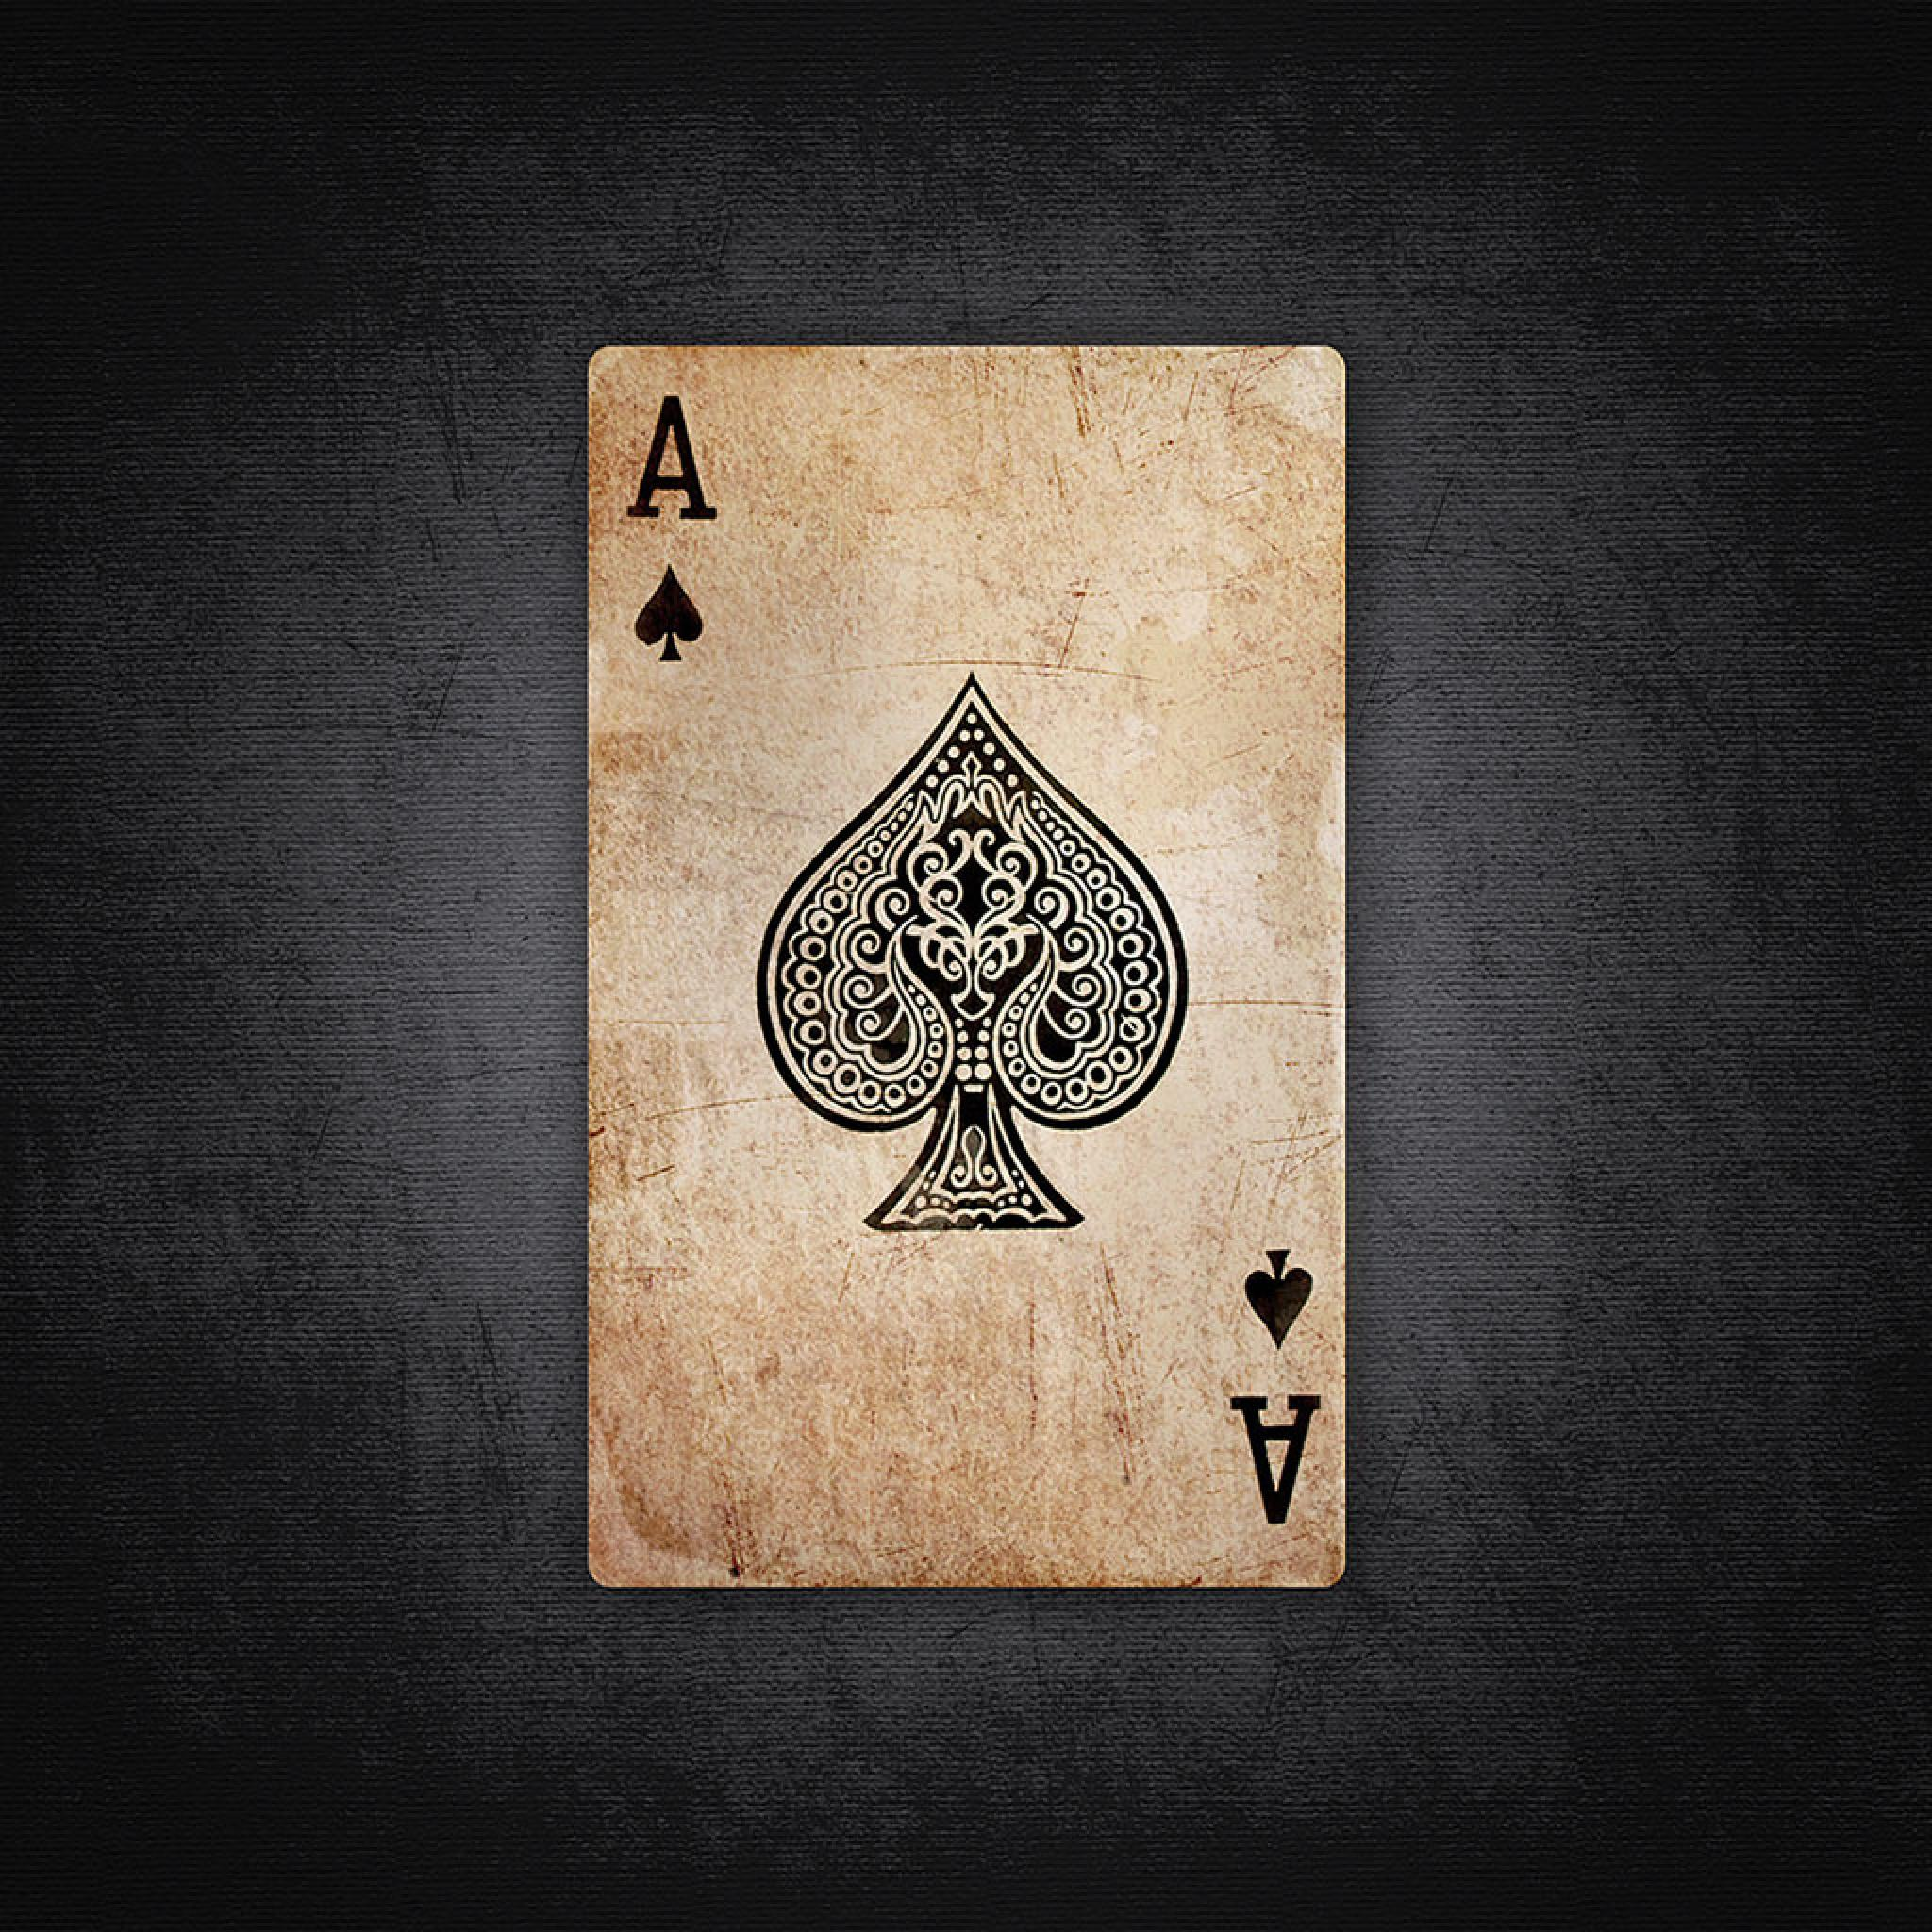 Cute Initial Wallpaper Miscellaneous Black Ace Of Hearts Ipad Iphone Hd